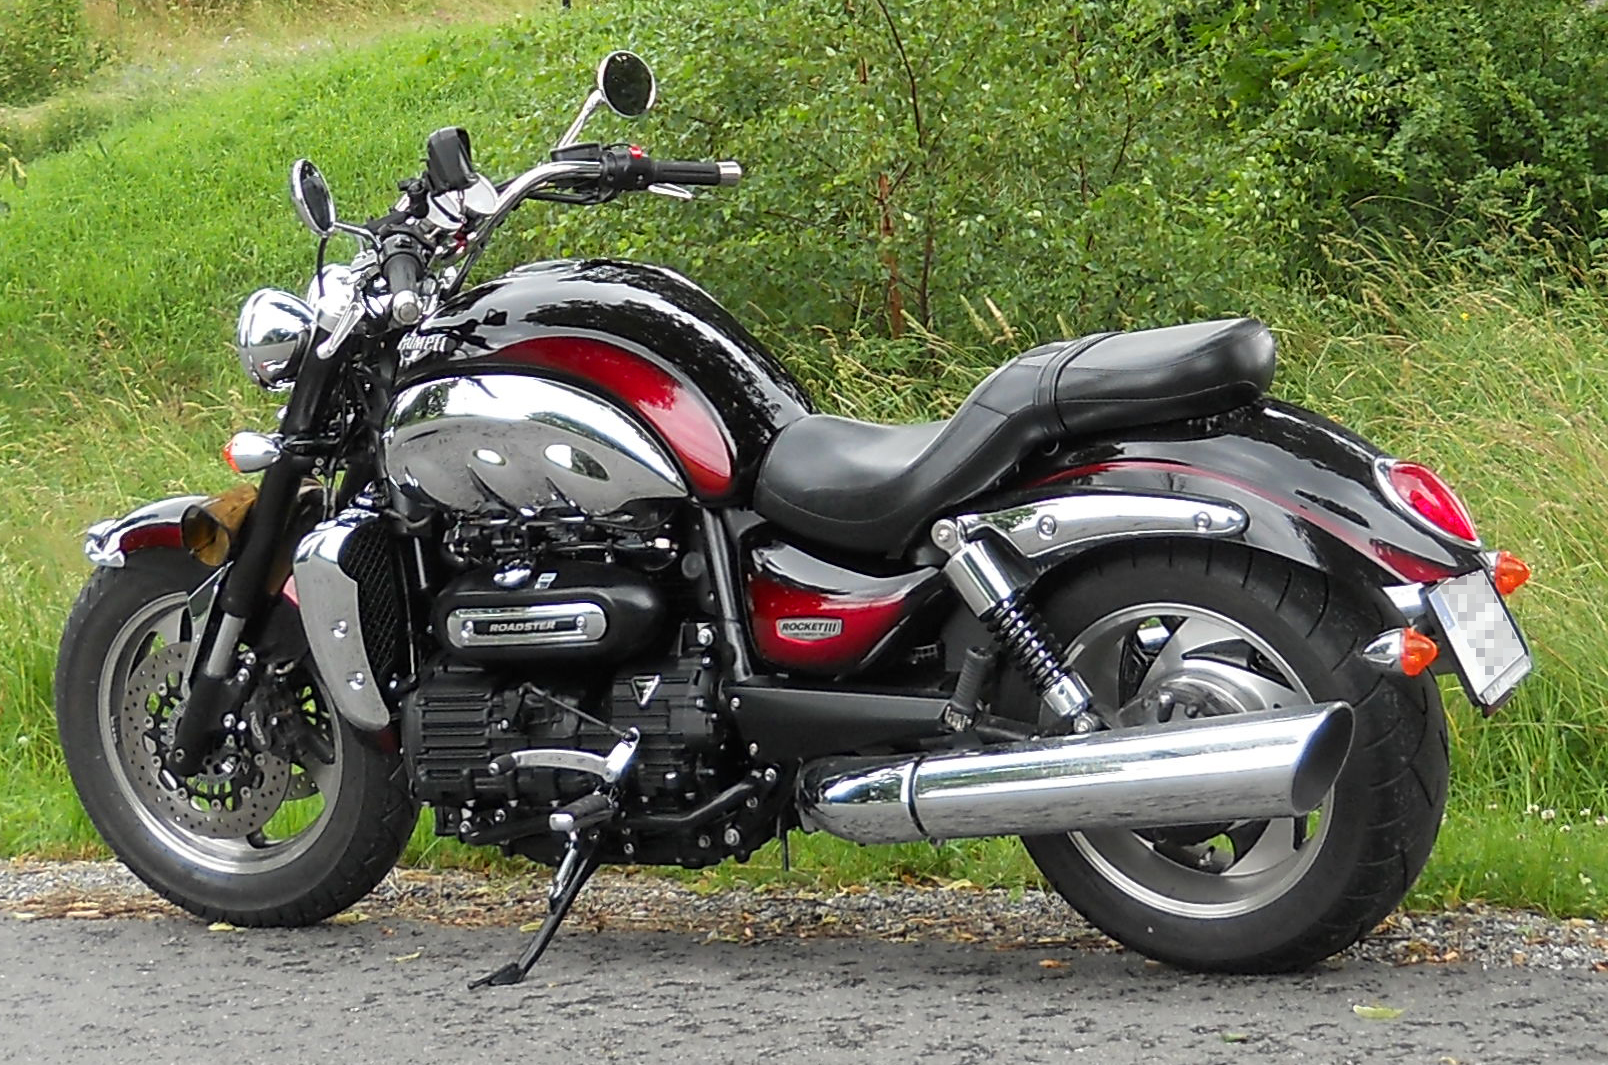 2006 triumph rocket iii pics specs and information. Black Bedroom Furniture Sets. Home Design Ideas